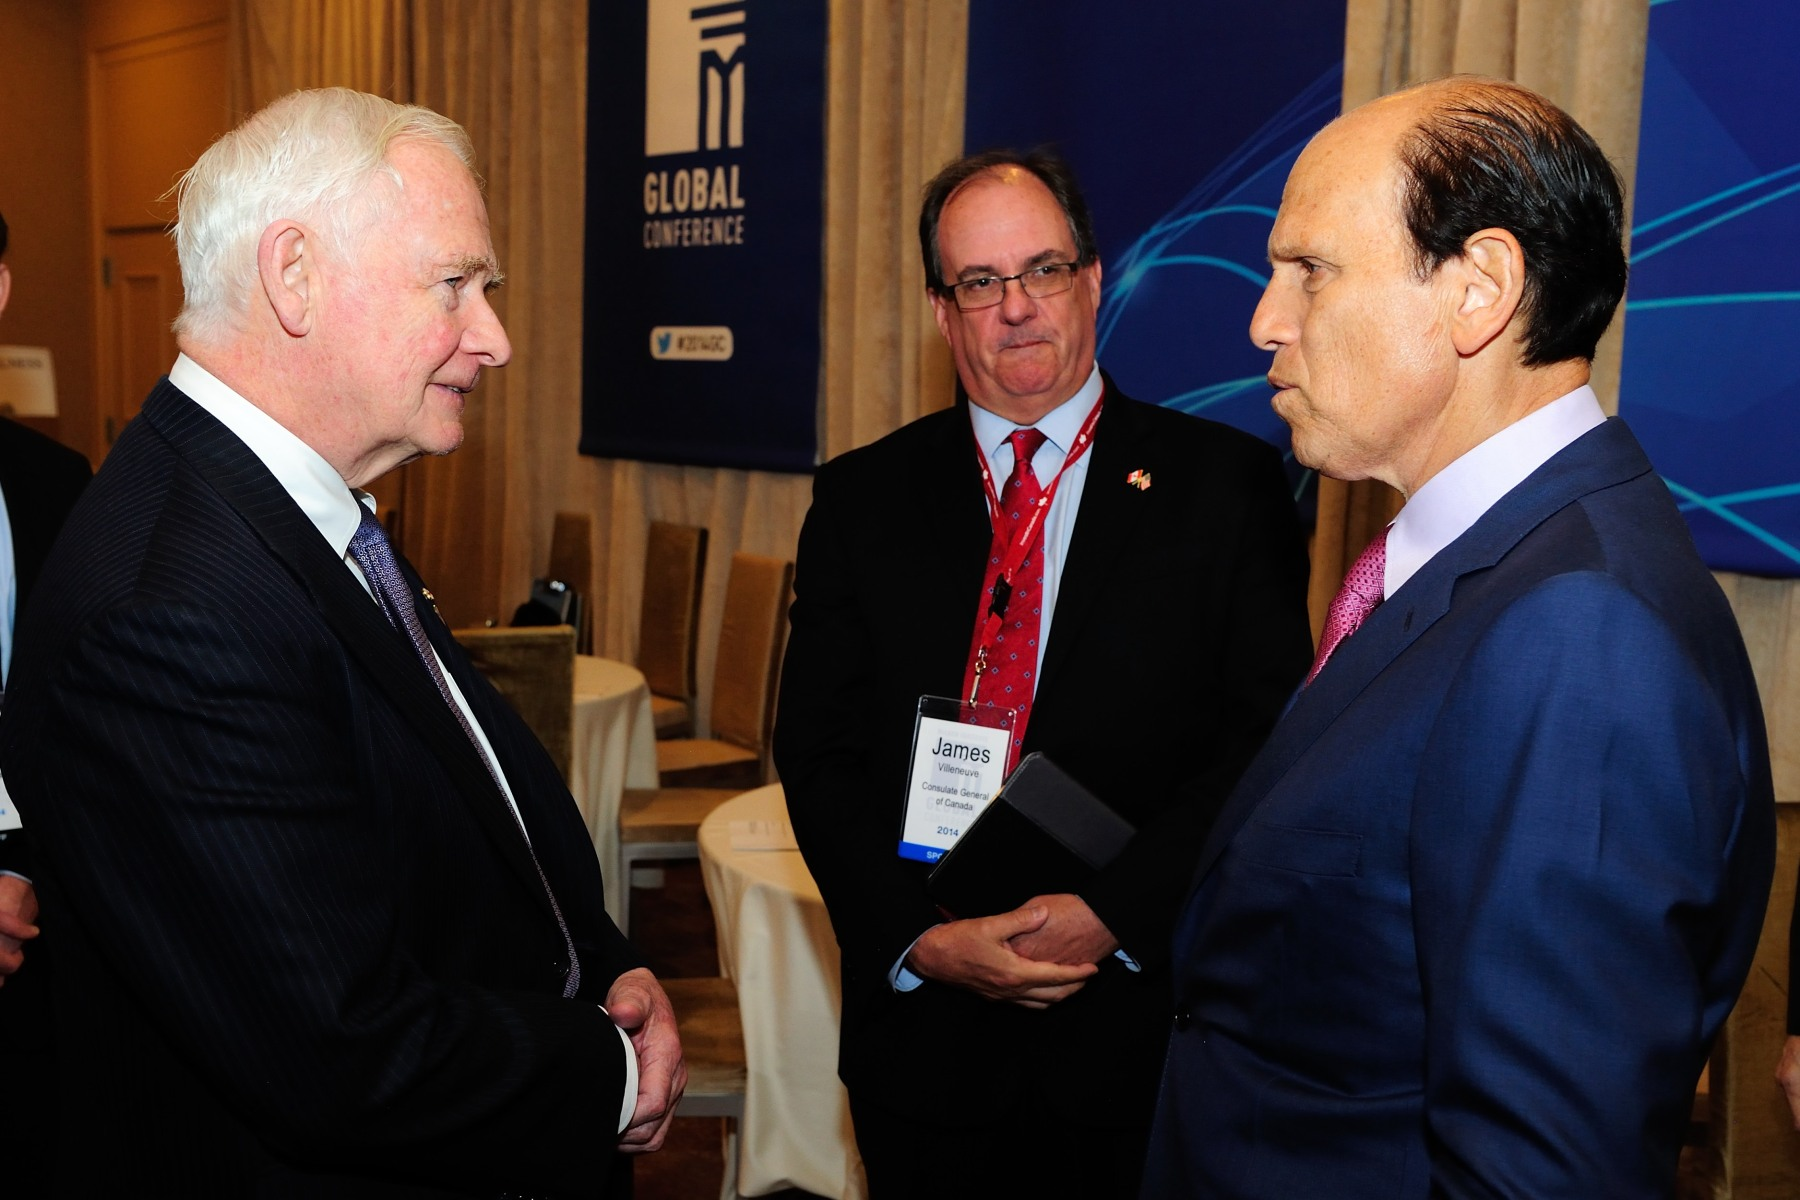 He will also meet with key American business leaders such as Michael Milken, Chairman of the Milken Institute.